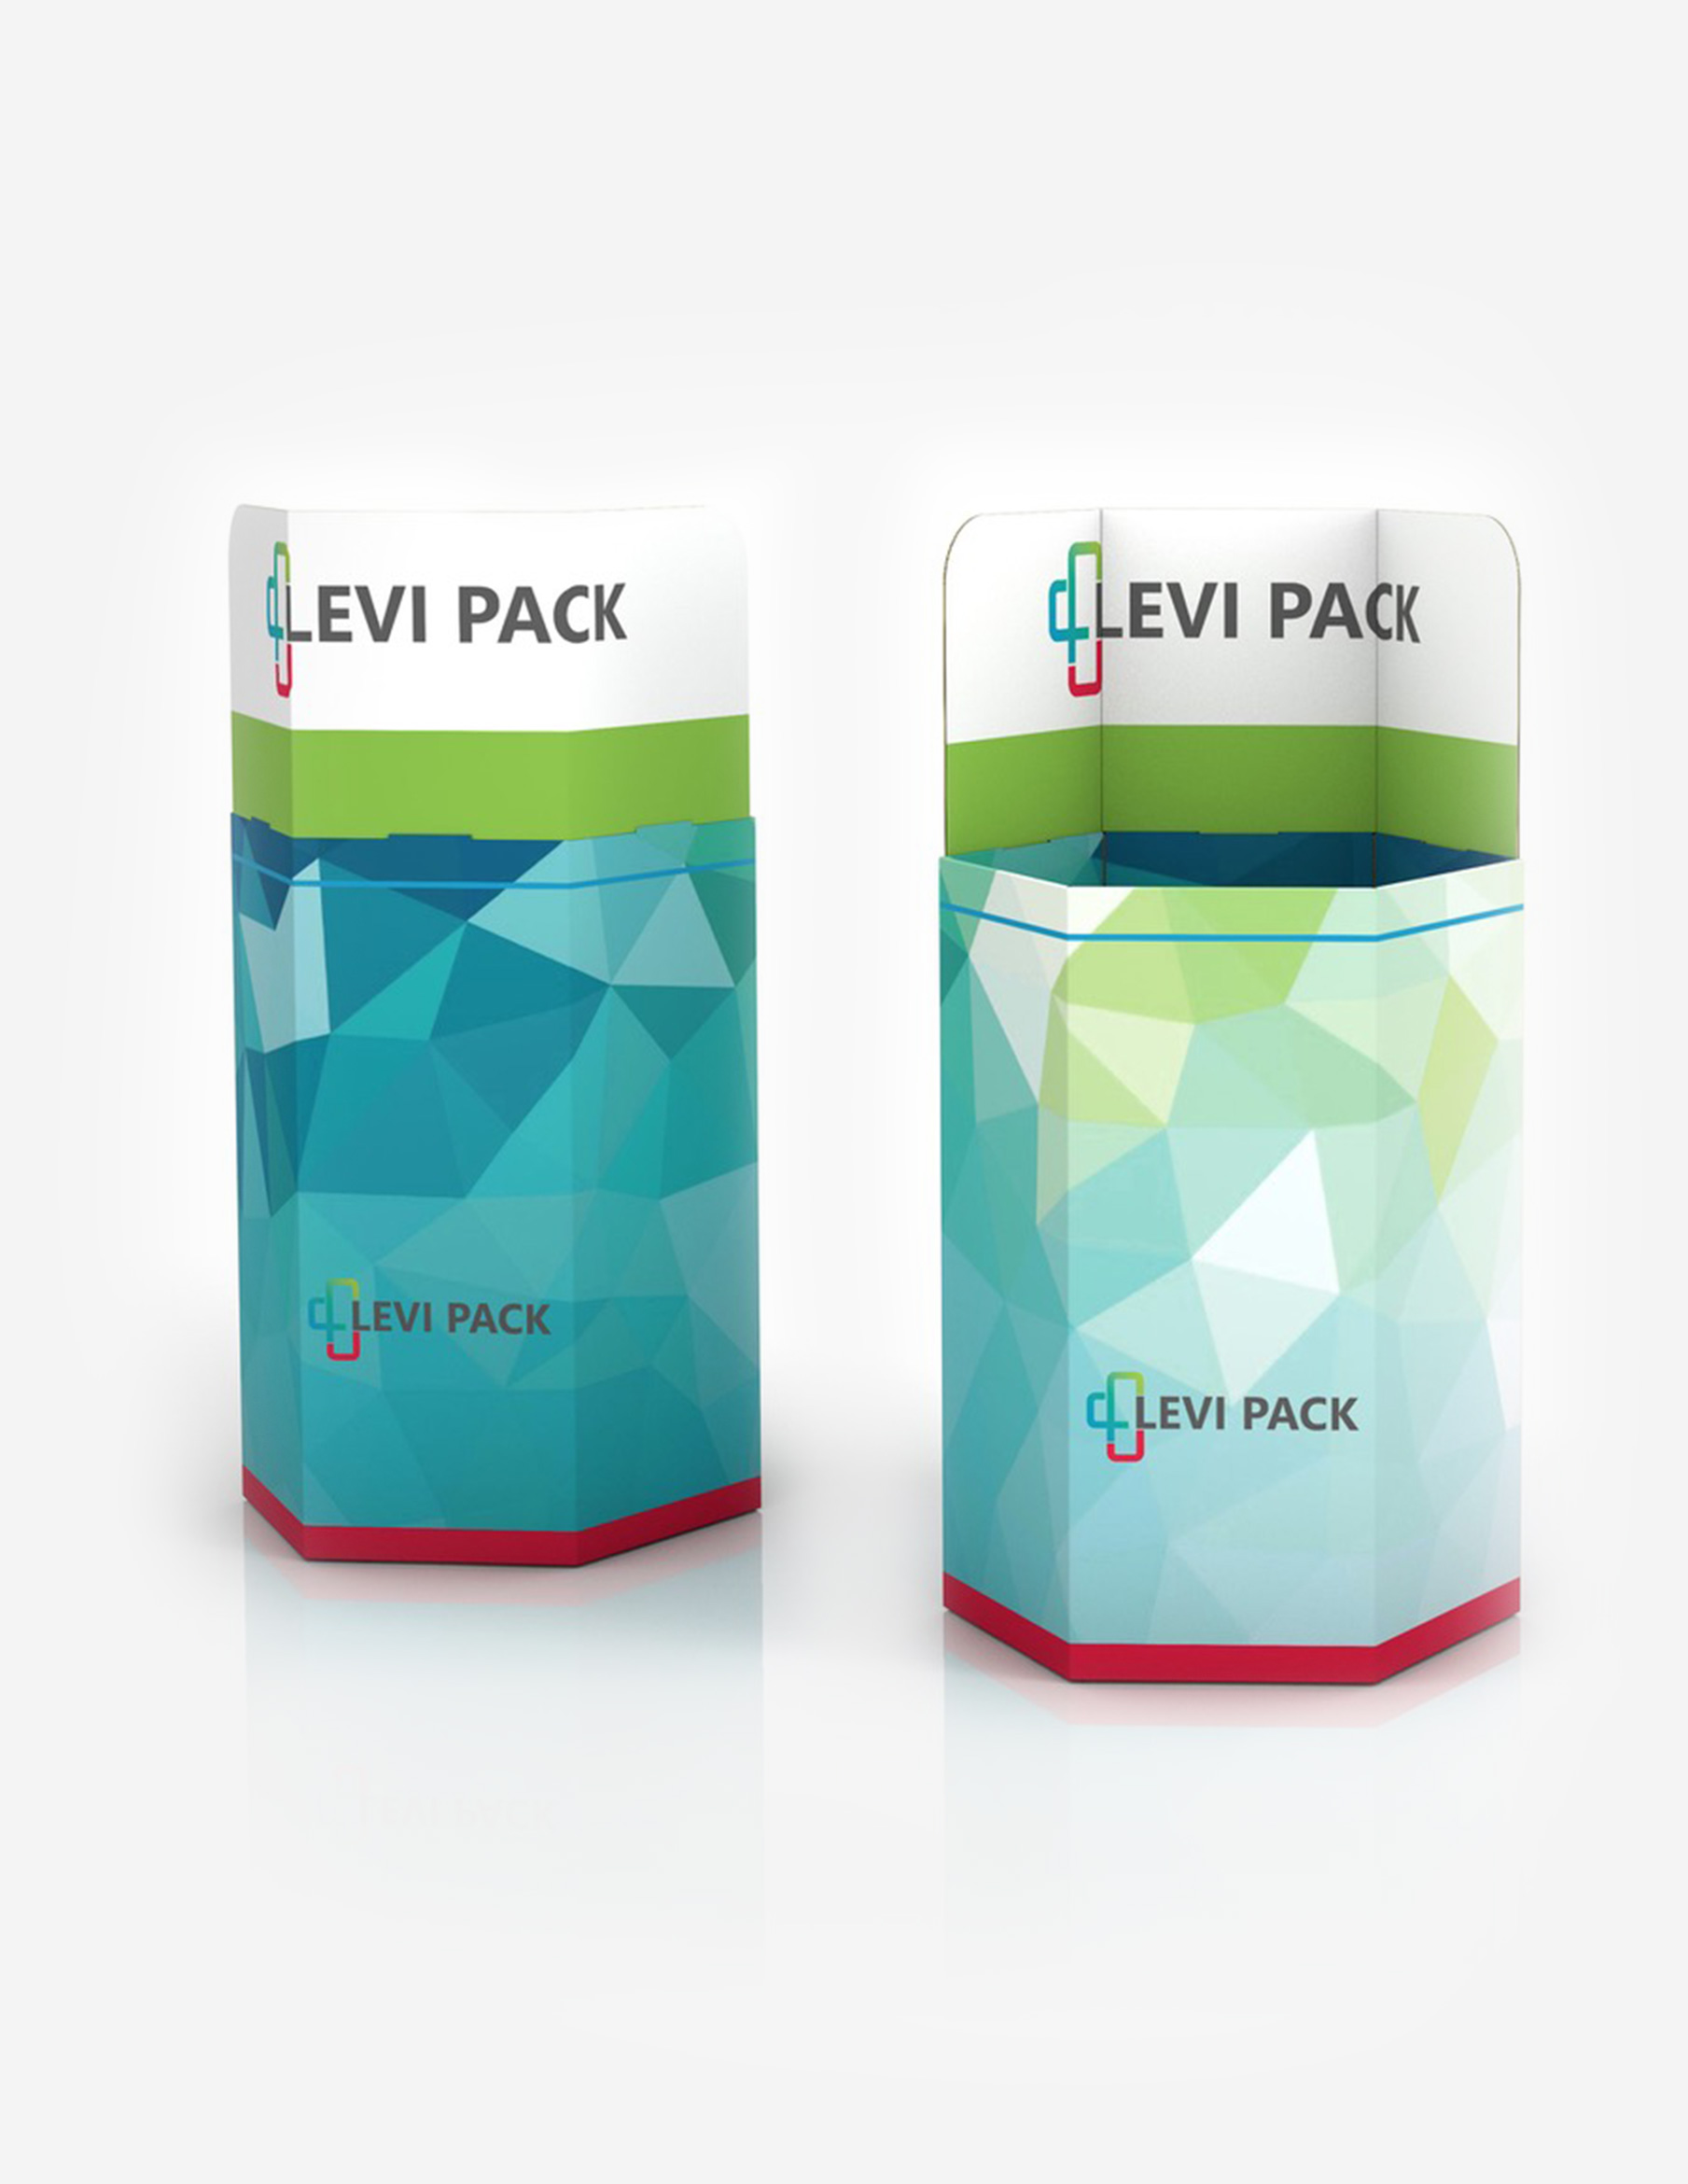 Displays von Levi Pack